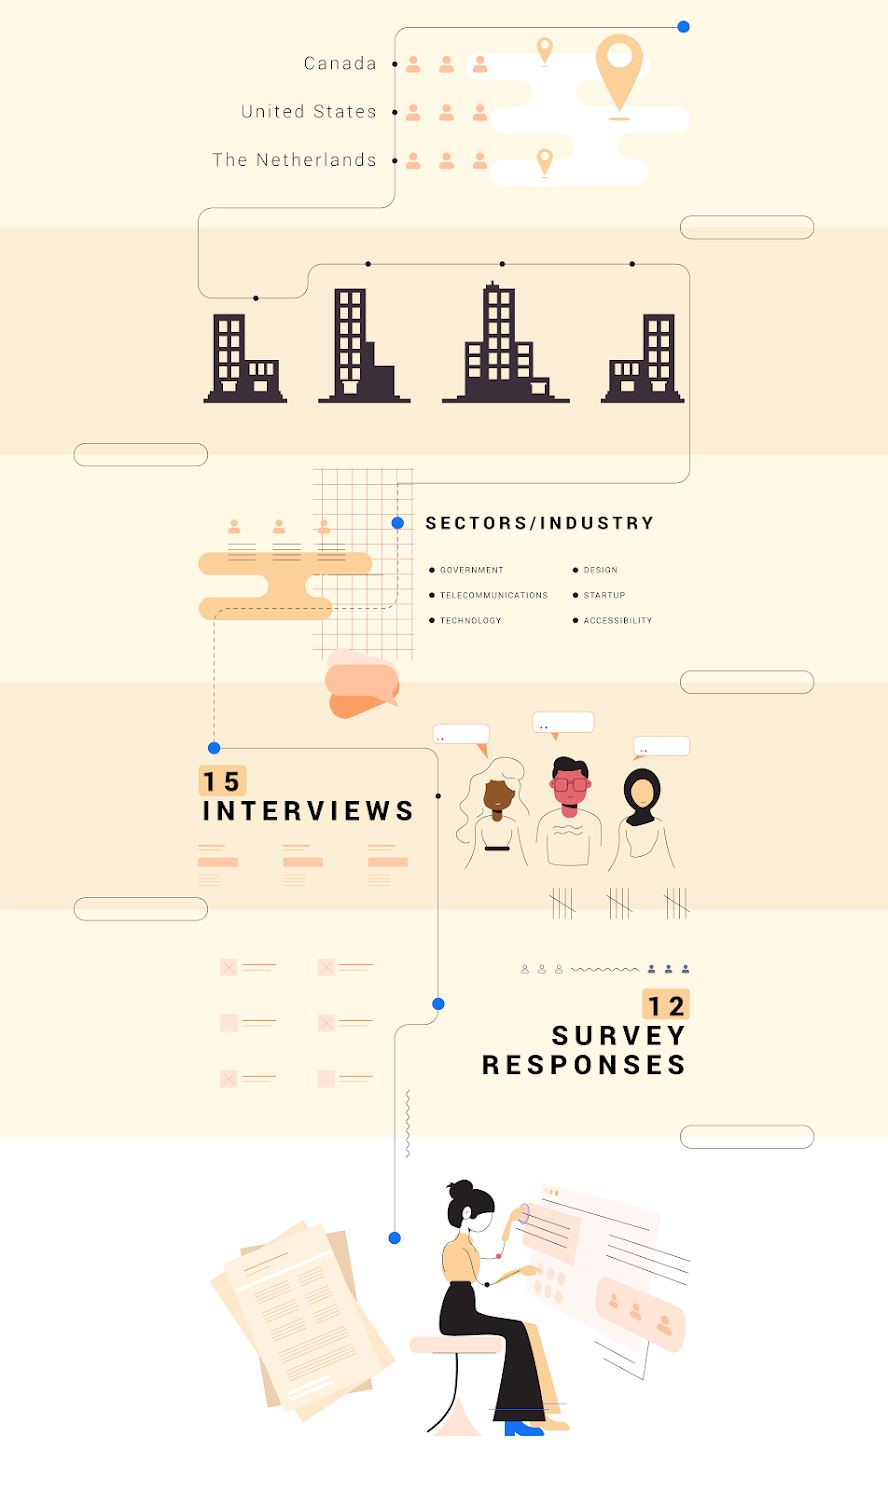 Infographic depicting the methodology behind the research series, which includes 15 interviews and 12 survey respondents.